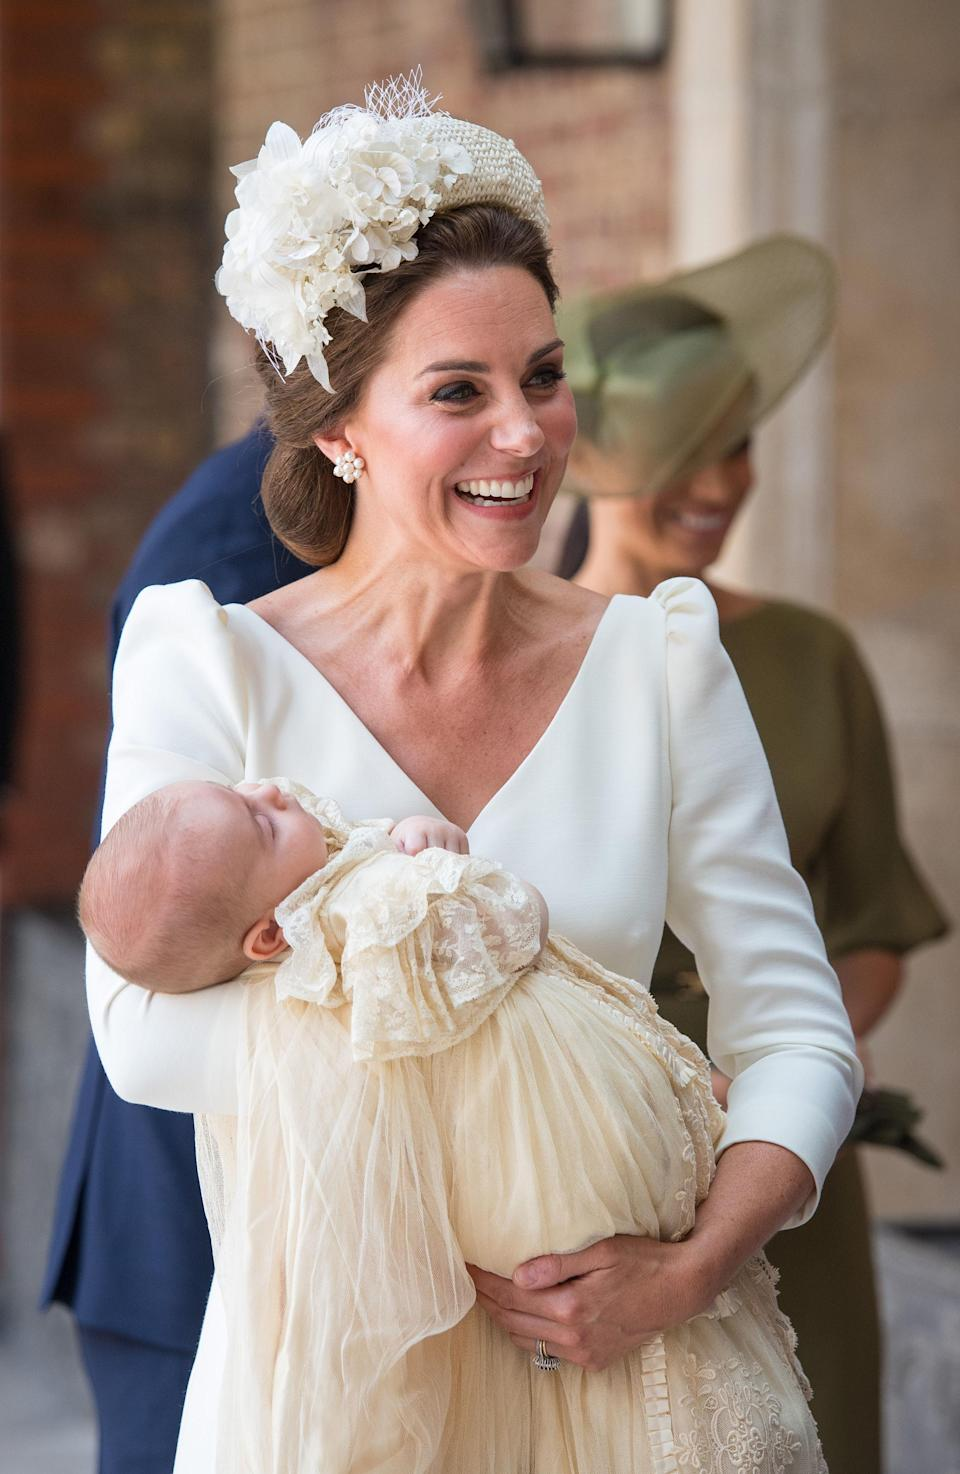 The Duchess of Cambridge was all smiles as she cradled her son outside the chapel [Photo: PA]